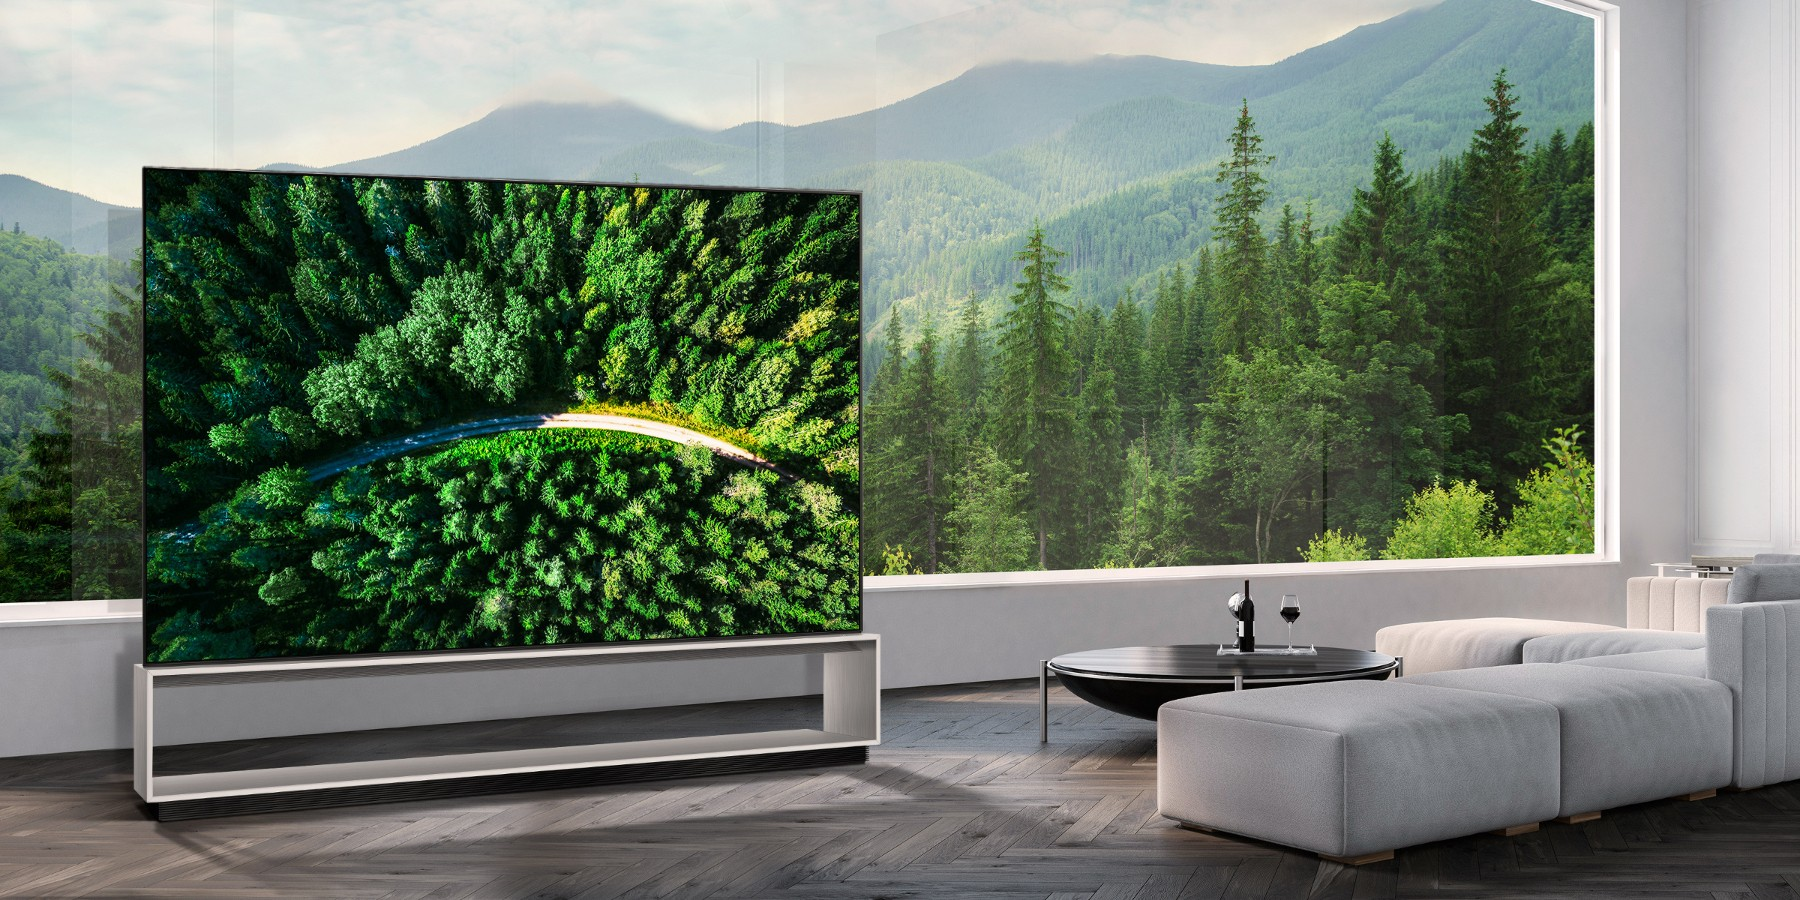 LG 8K OLED TV showing a road in the woods is placed in a spacious room with a spectacular view.